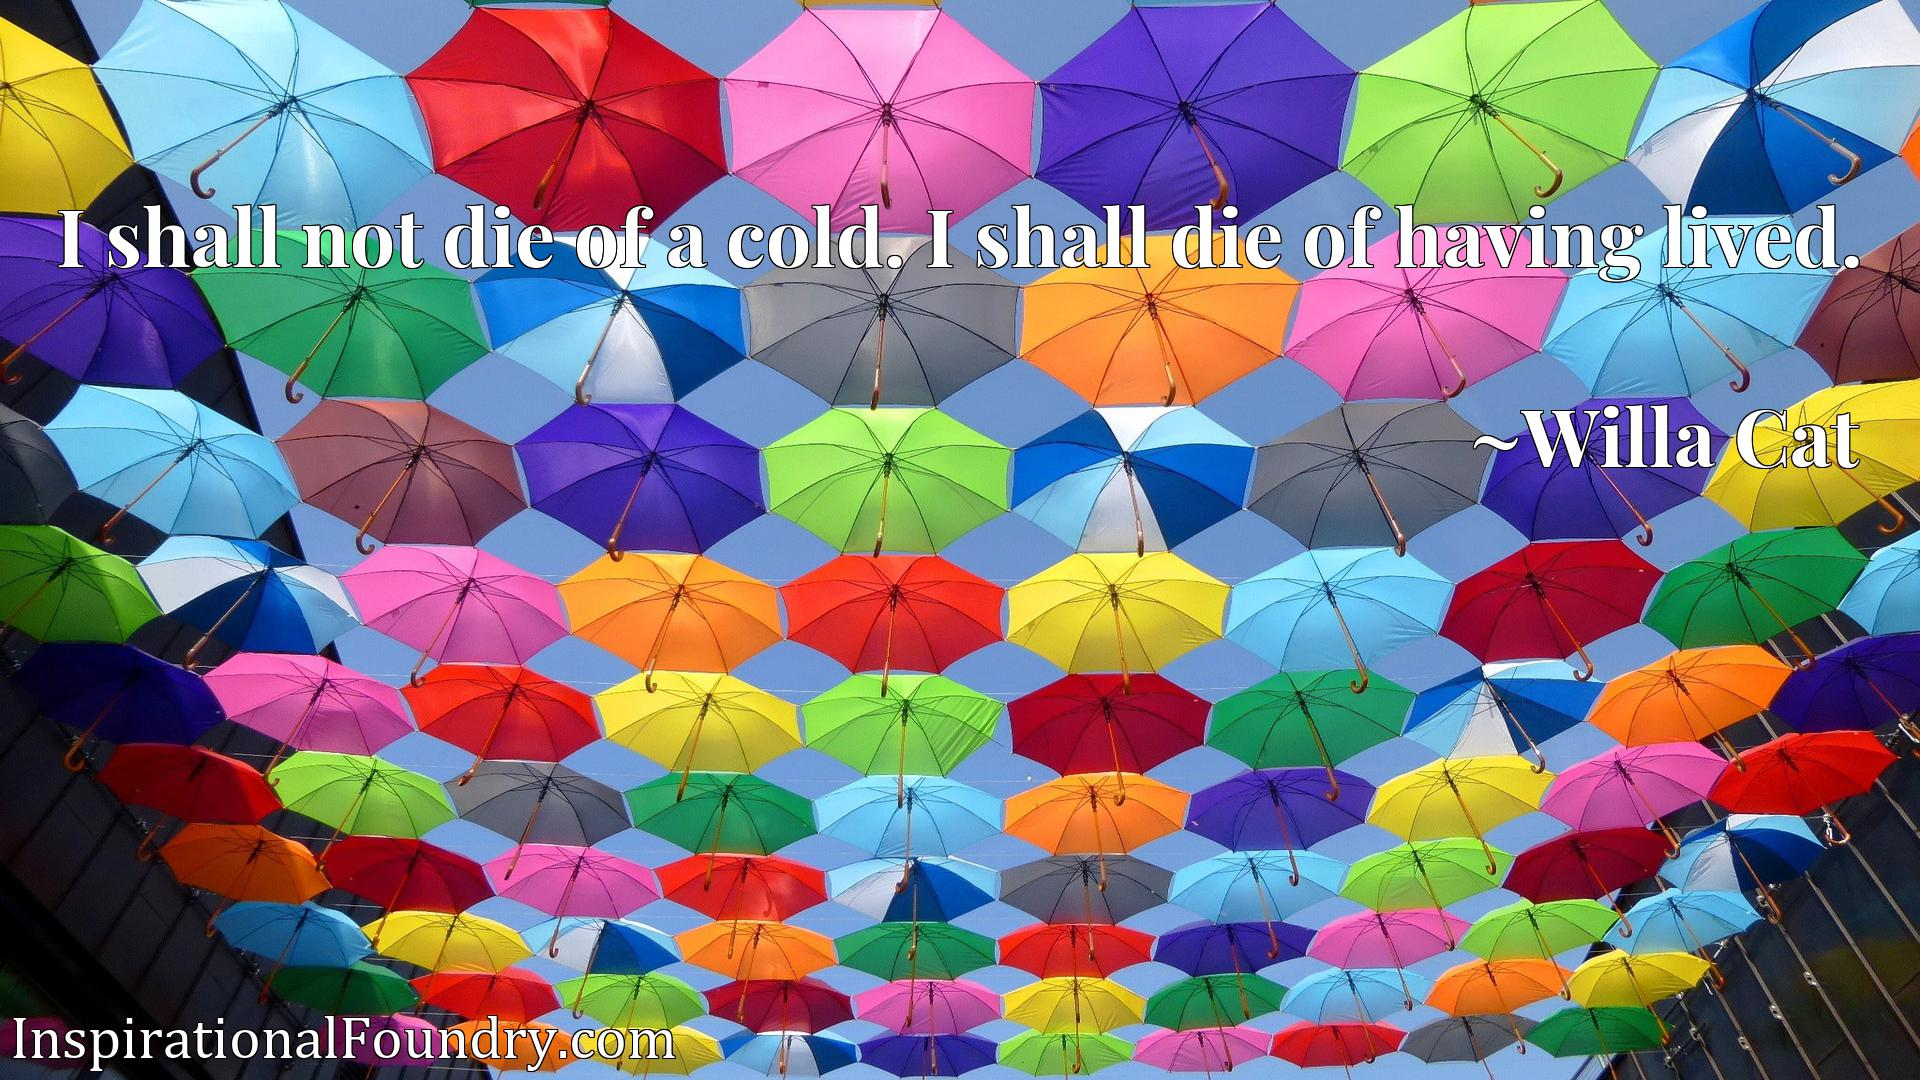 I shall not die of a cold. I shall die of having lived.